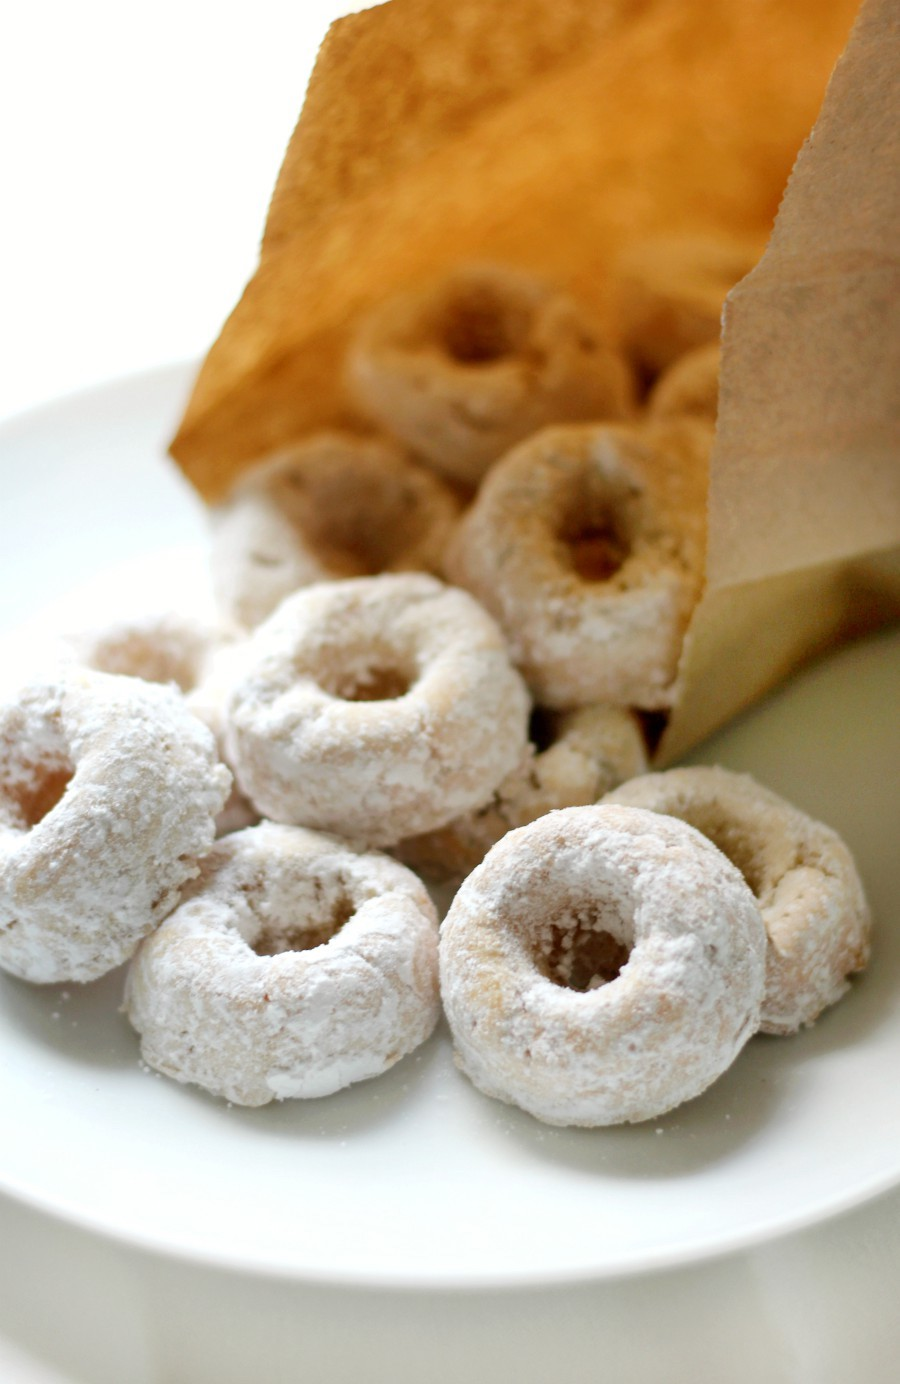 mini-powdered-doughnuts-close-up-in-brown-paper-bag